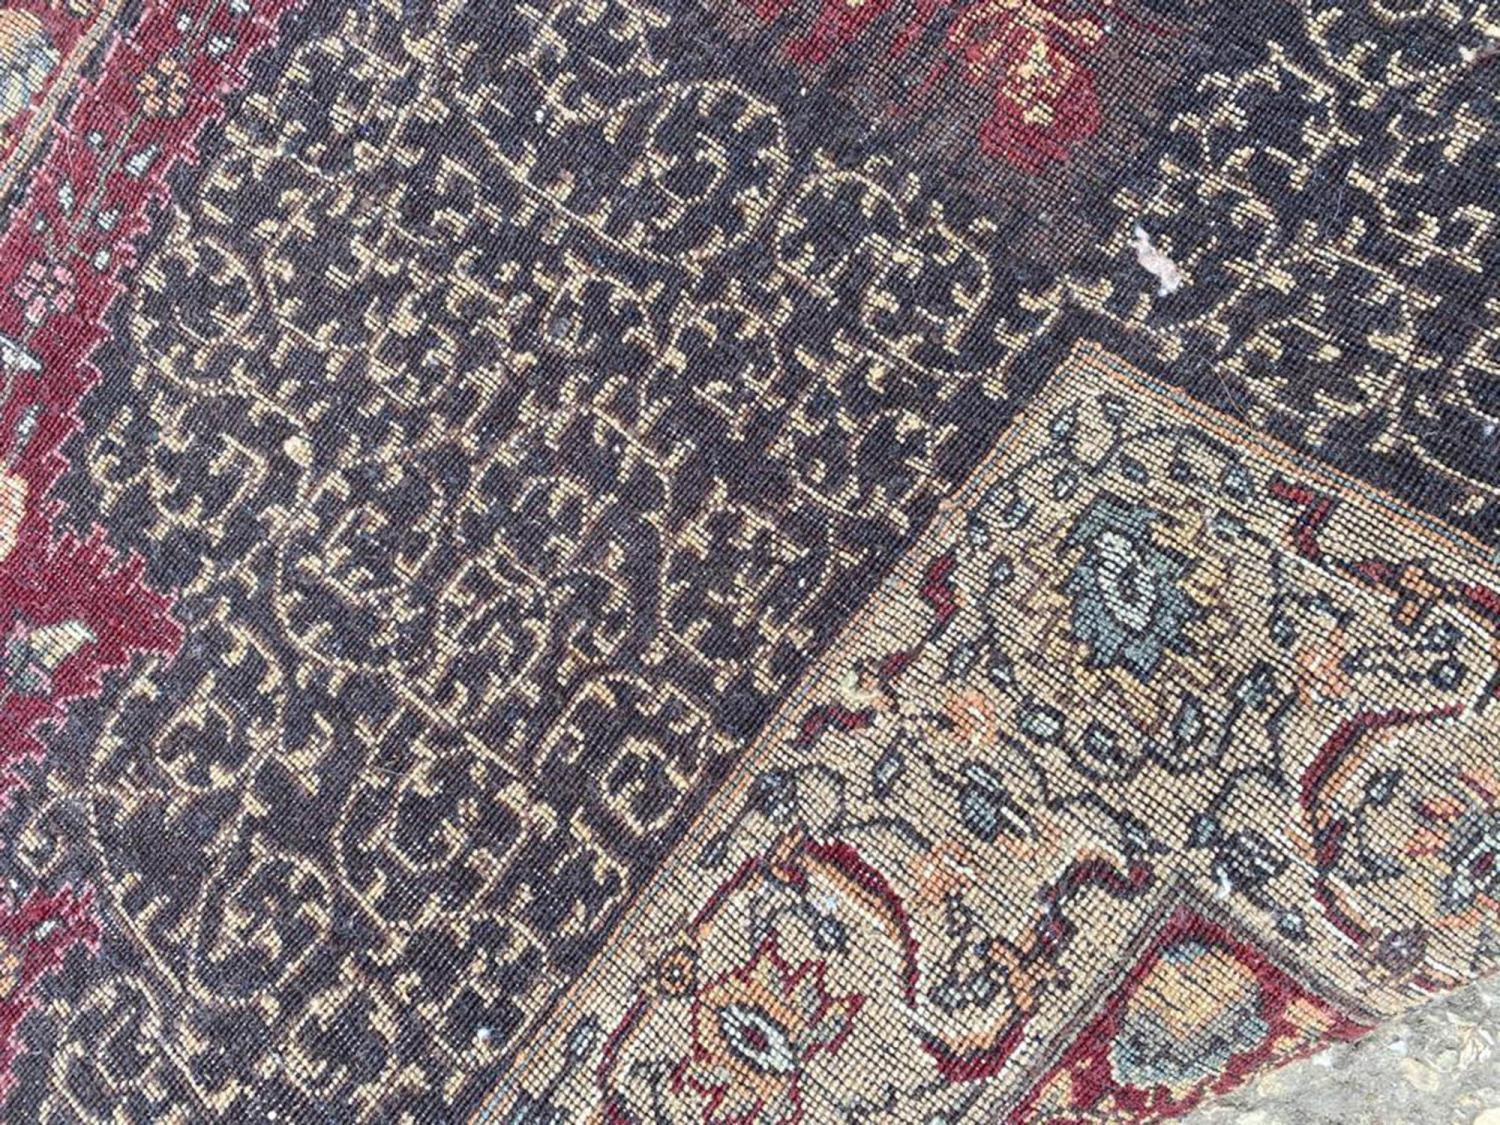 FINE HEREKE DESIGN CARPET, 560cm x 353cm. - Image 4 of 4